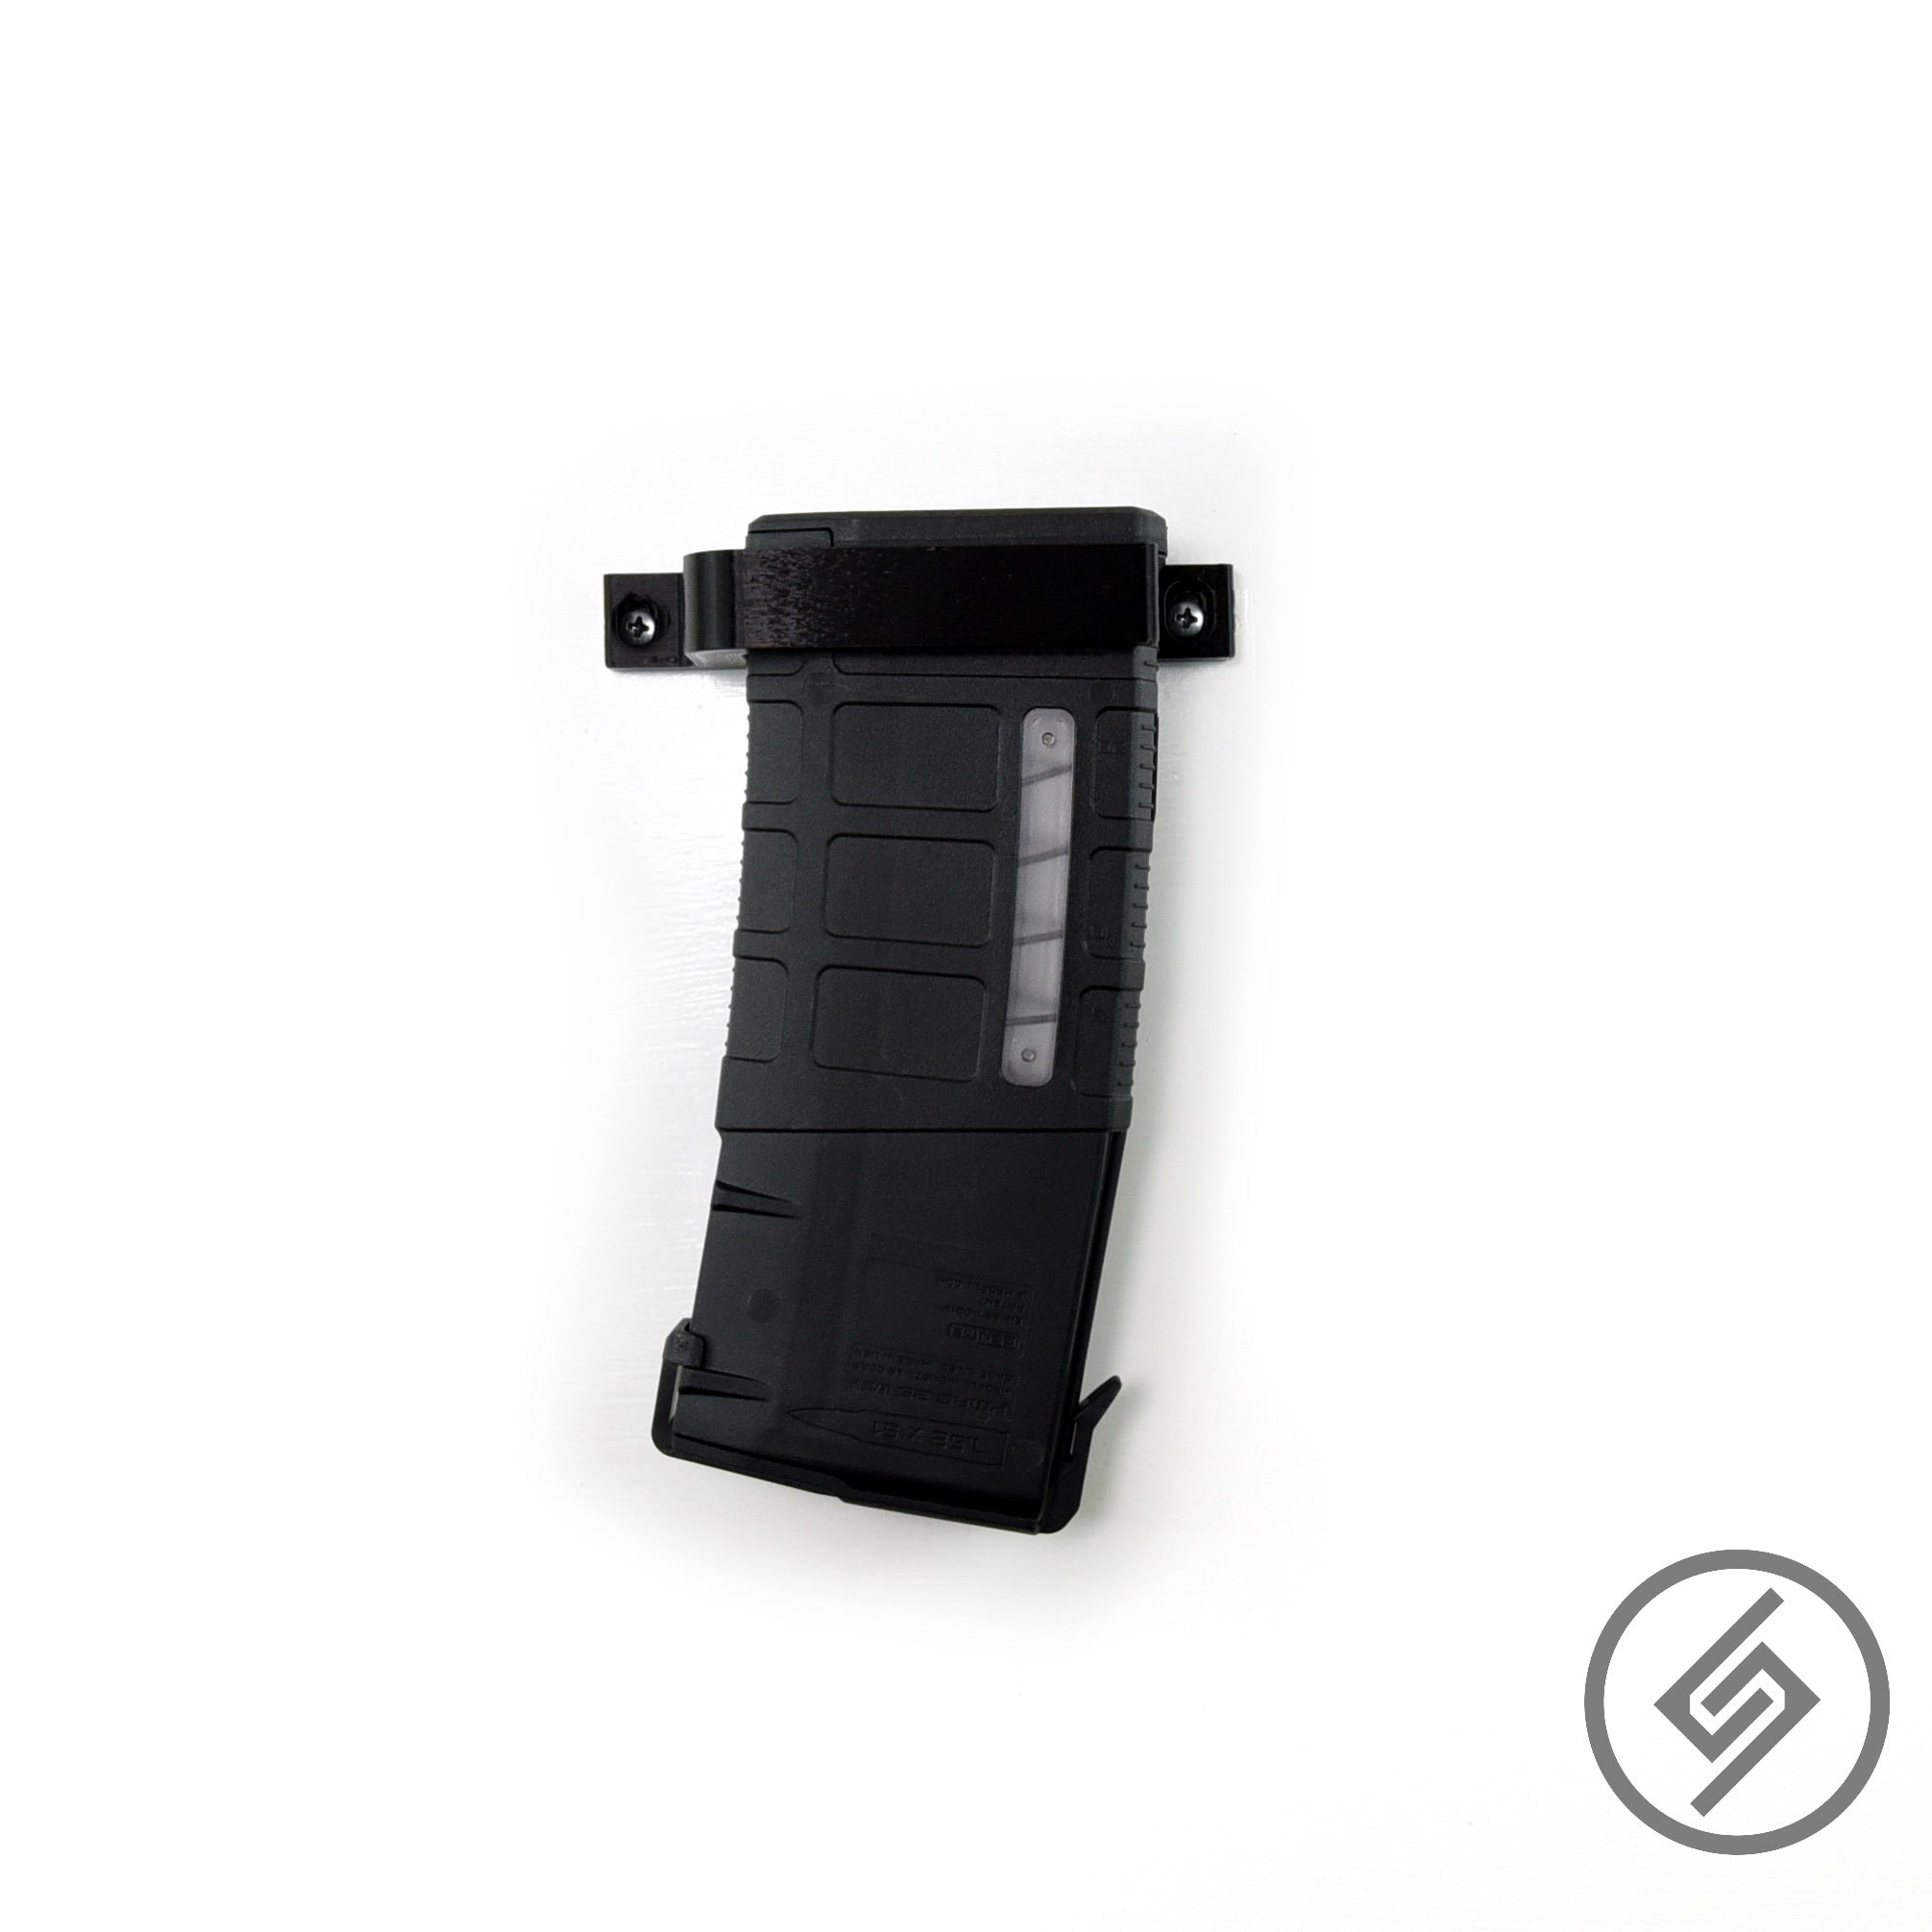 AR-10 PMAG Magazine Mount Display Holder Adapter Wall